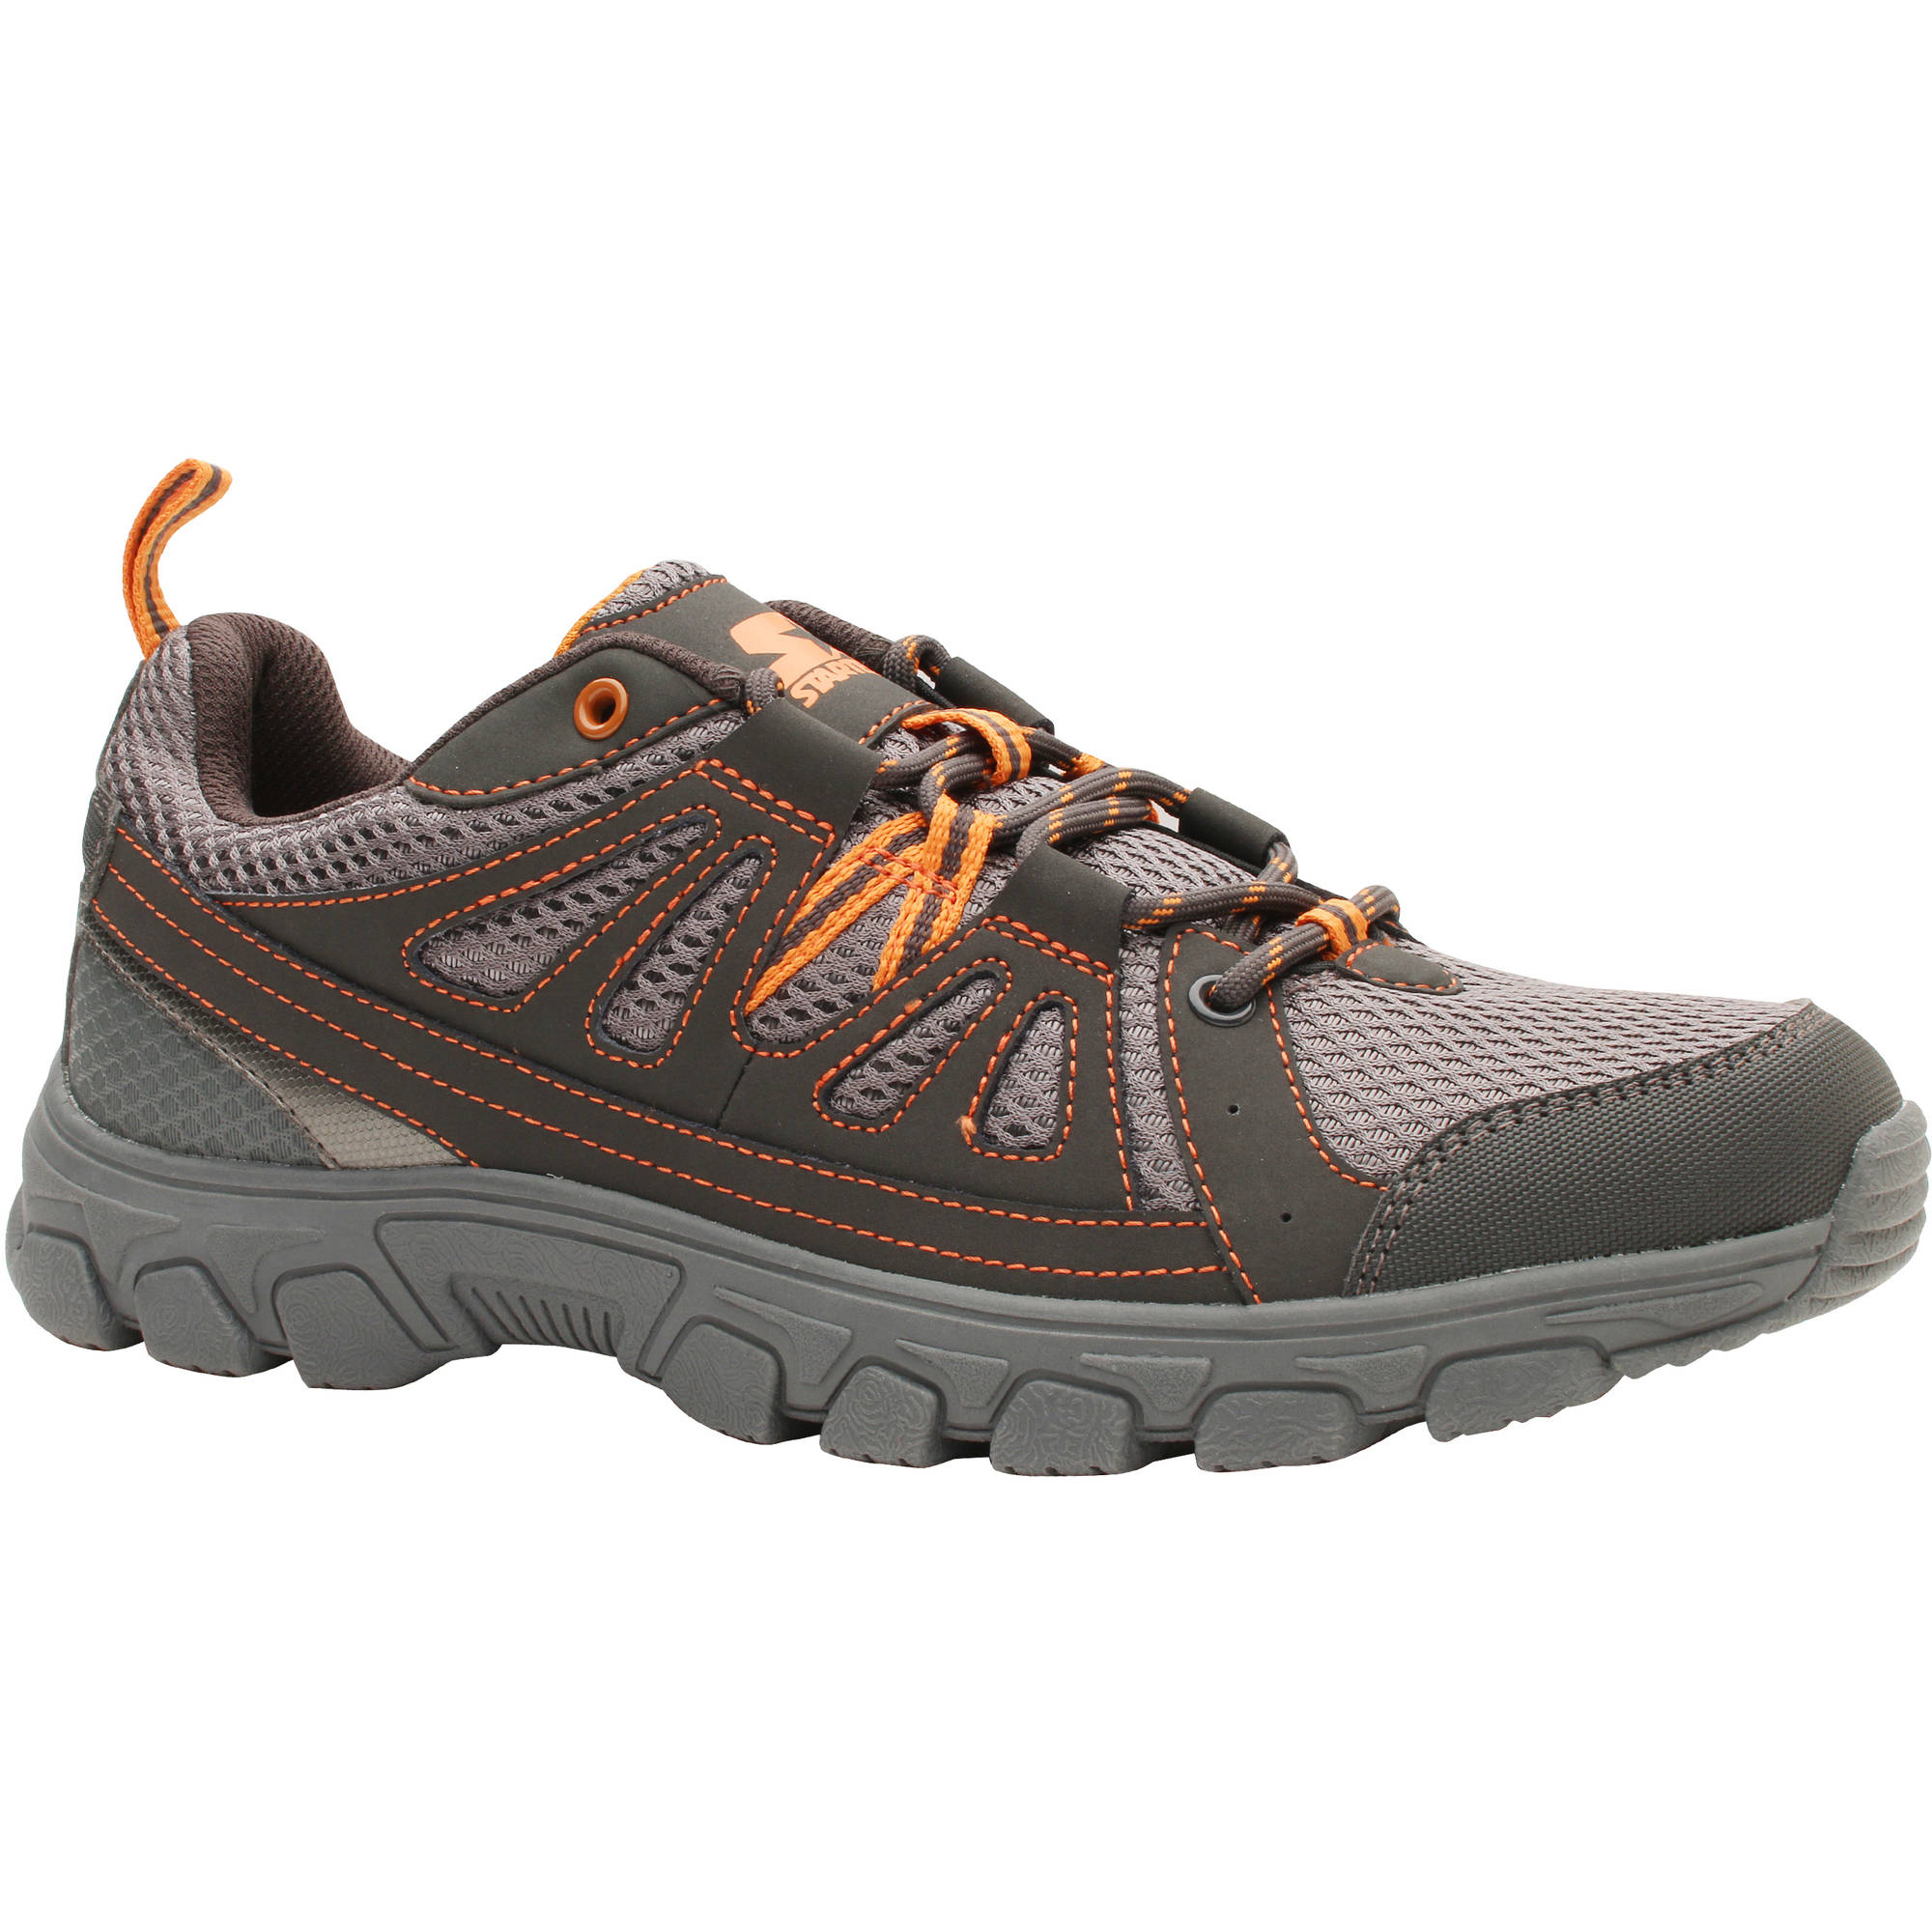 Starter Men's Athletic Low Trail Hiker